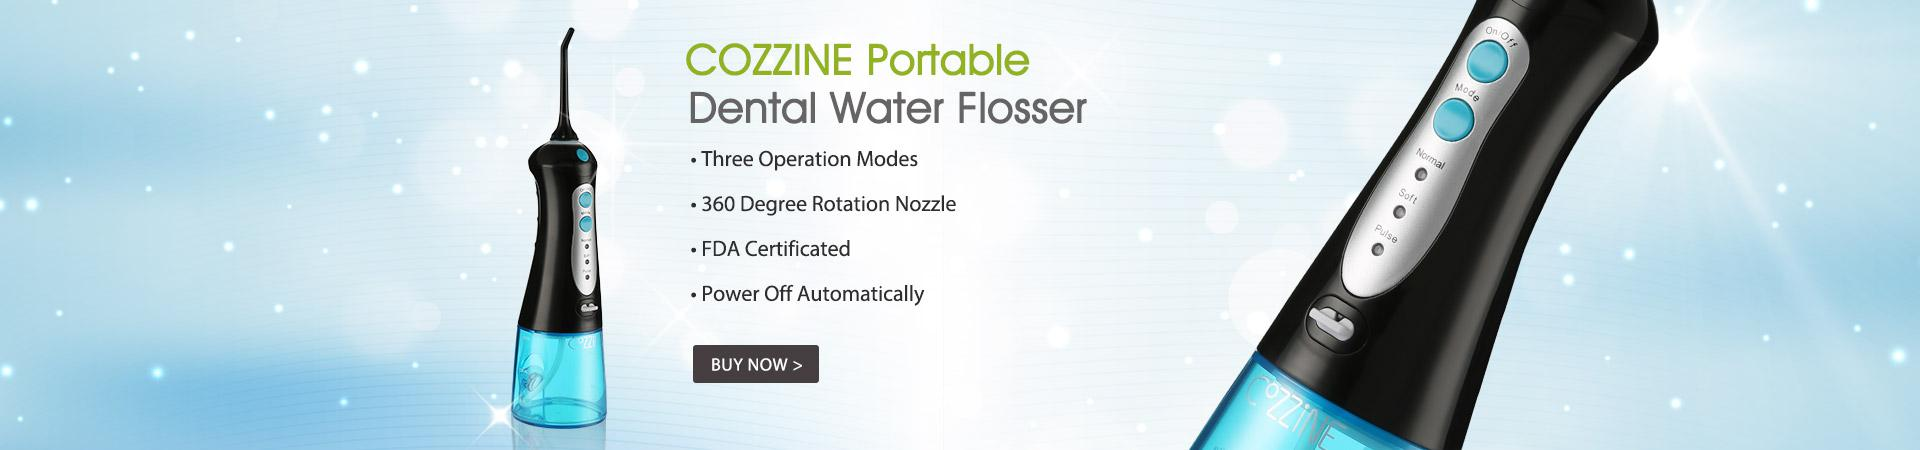 Cozzine Official Store An Electrical Shaver Point How To Fit A Shaving Socket Diy Doctor